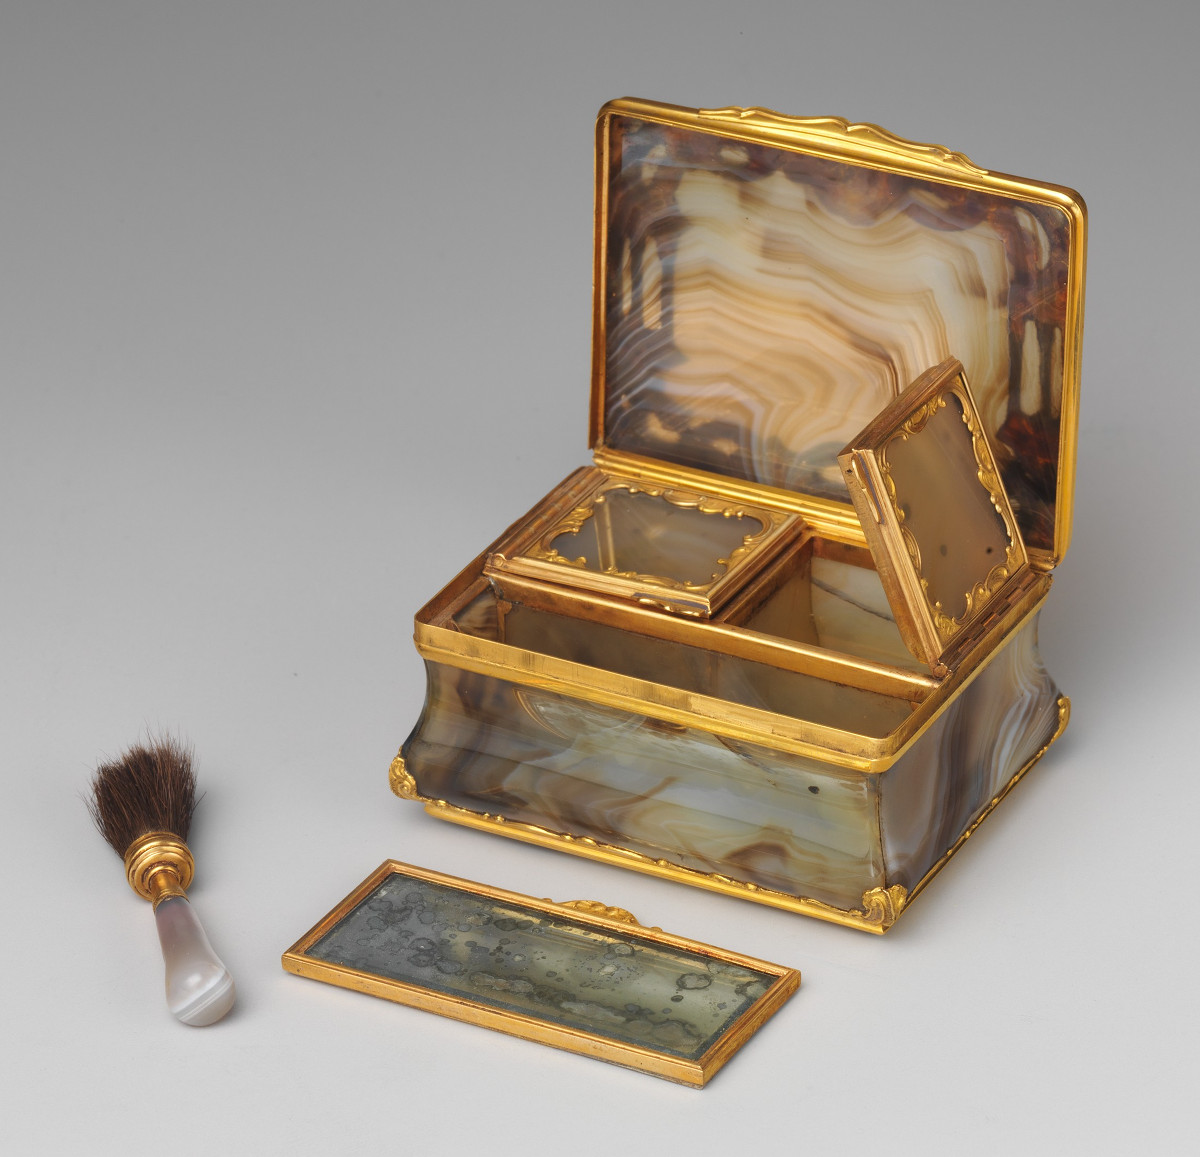 1750. Box for rouge and patches. Gold and platinum. metmuseum